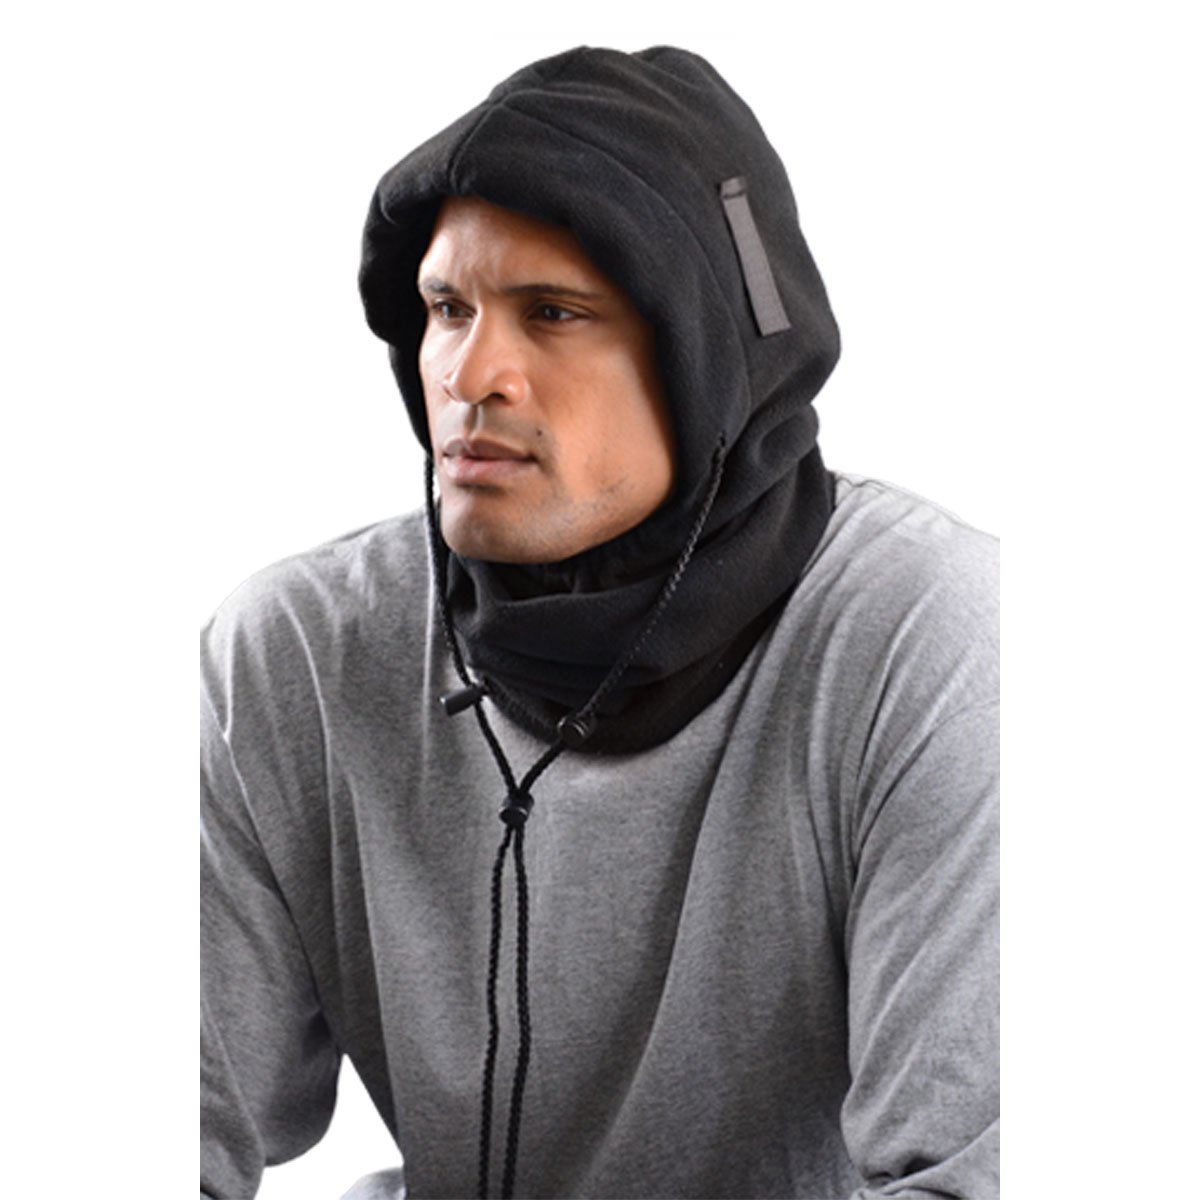 Stay Warm - 3-in-1 Fleece Balaclava - Where it 3 Different ways! - BLACK-12-PACK